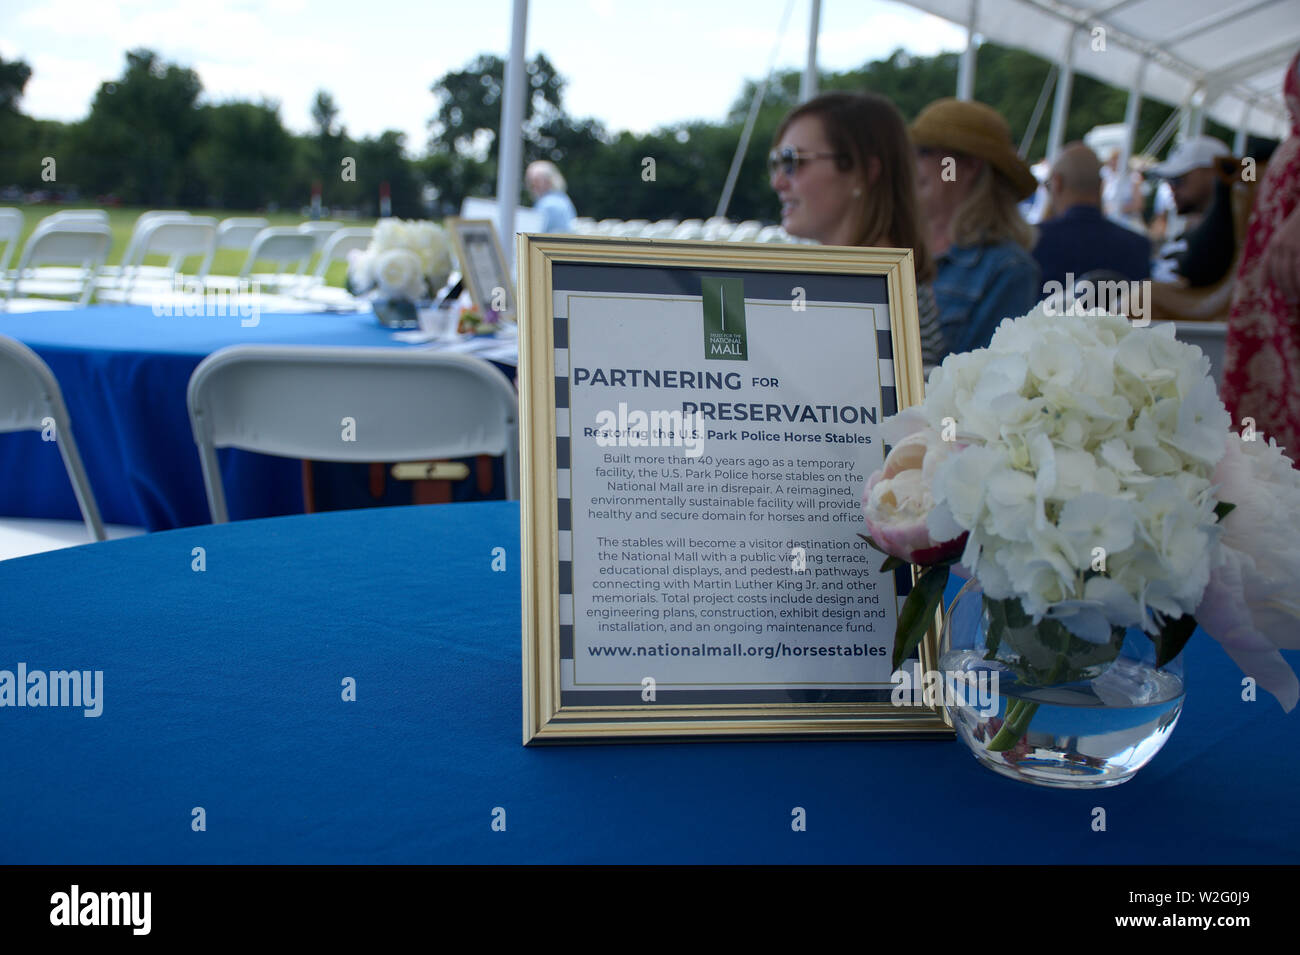 District Cup Polo match covered tent area with purpose of event sign and flower in clear vase on a table - Stock Image